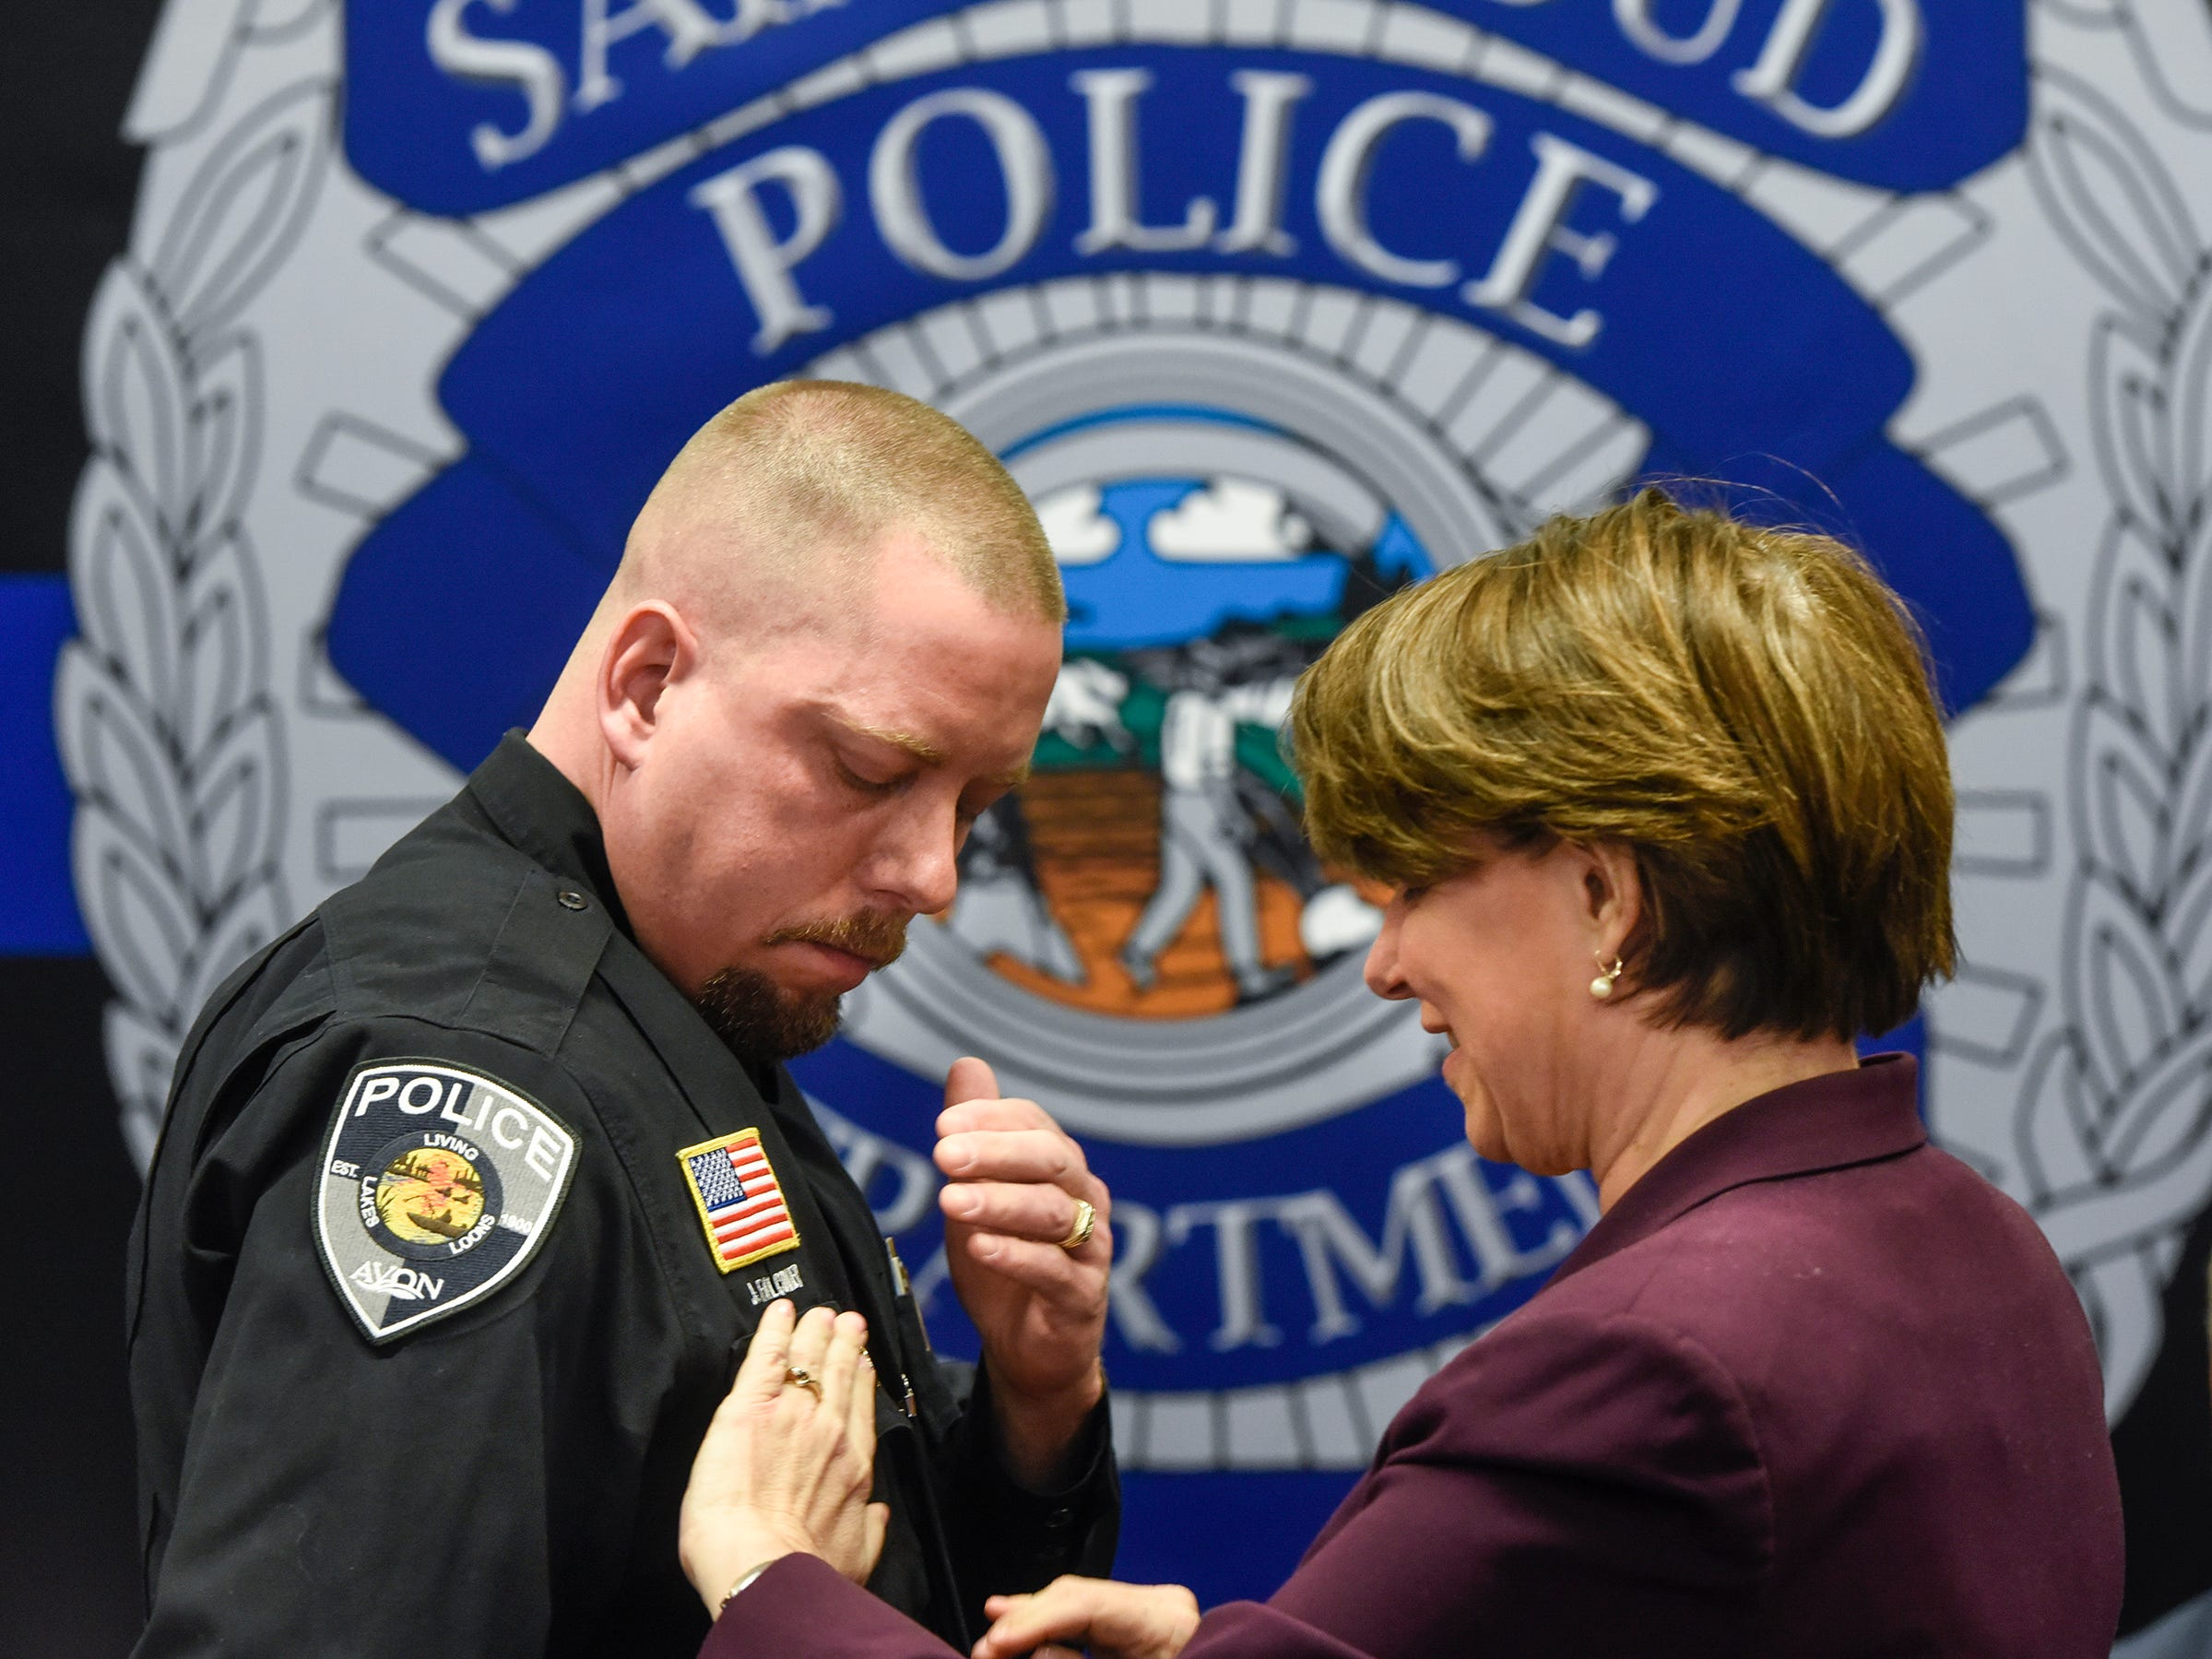 U.S. Sen. Amy Klobuchar takes part in a ceremony awarding officer Jason Falconer with the Congressional Badge of Bravery Award Thursday, April 5, at the St. Cloud Police Department in St. Cloud.